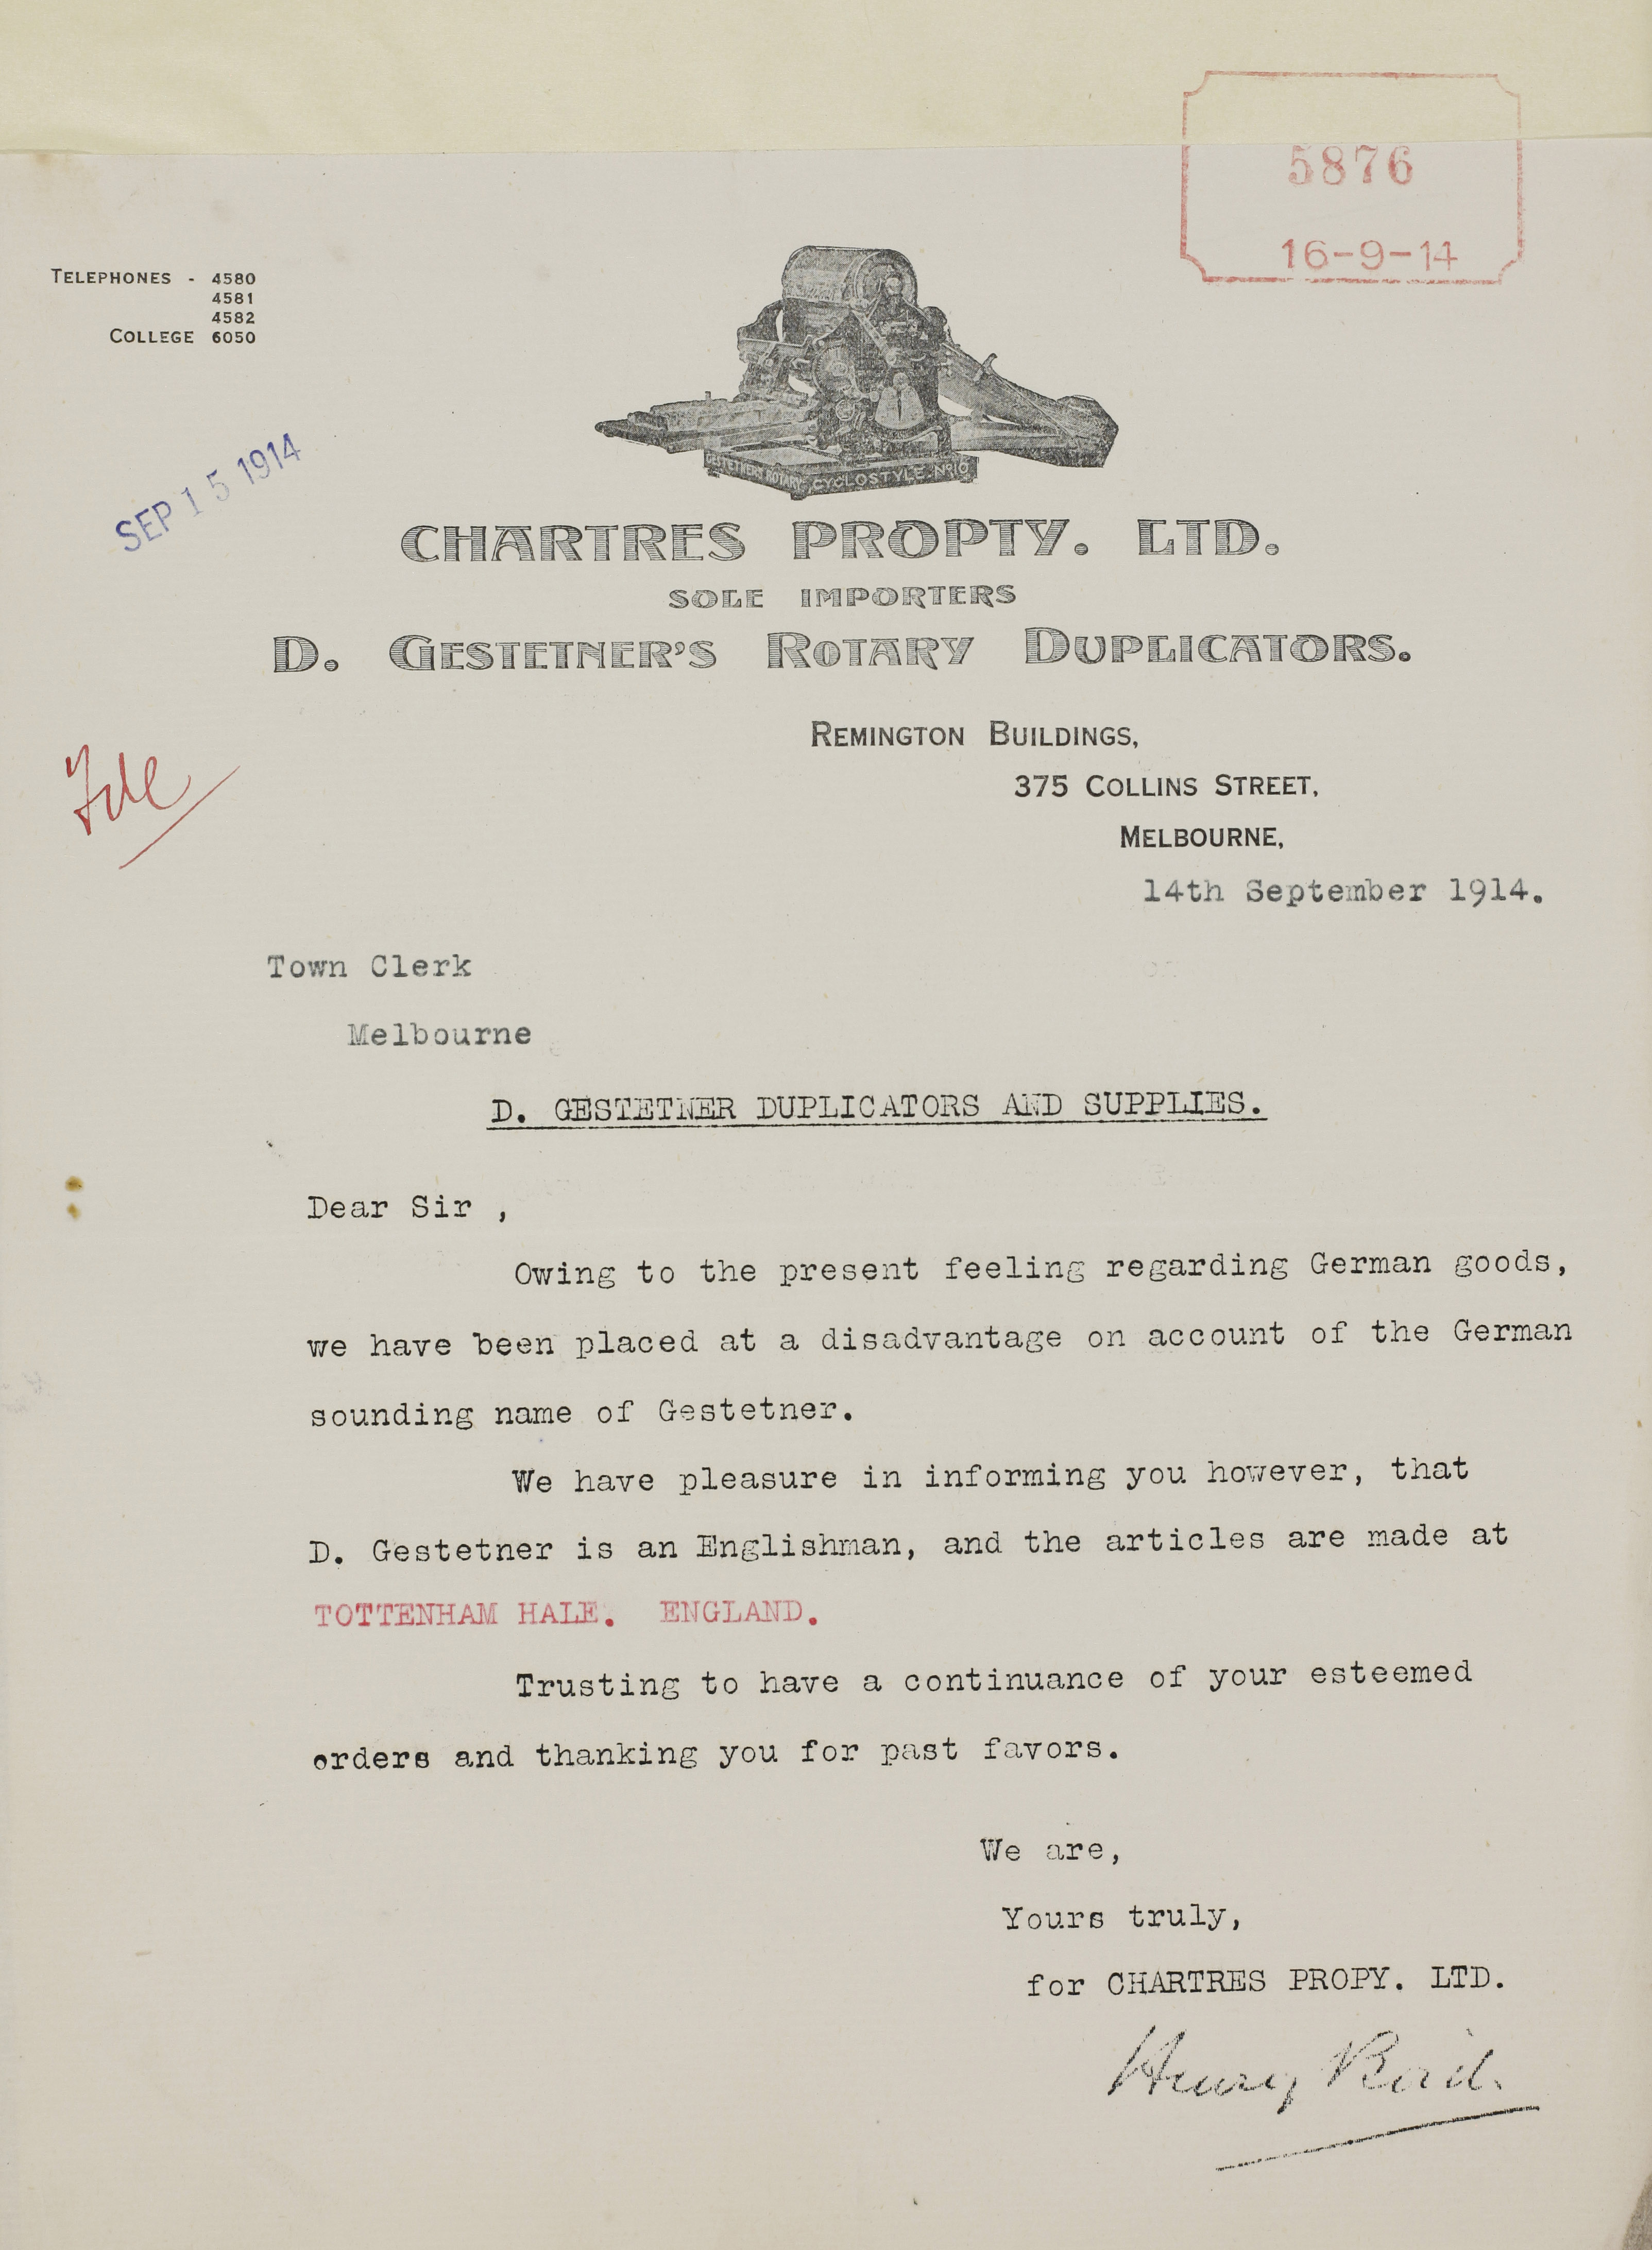 Image of letter from Chartres Pty Ltd, 14 September 1914.